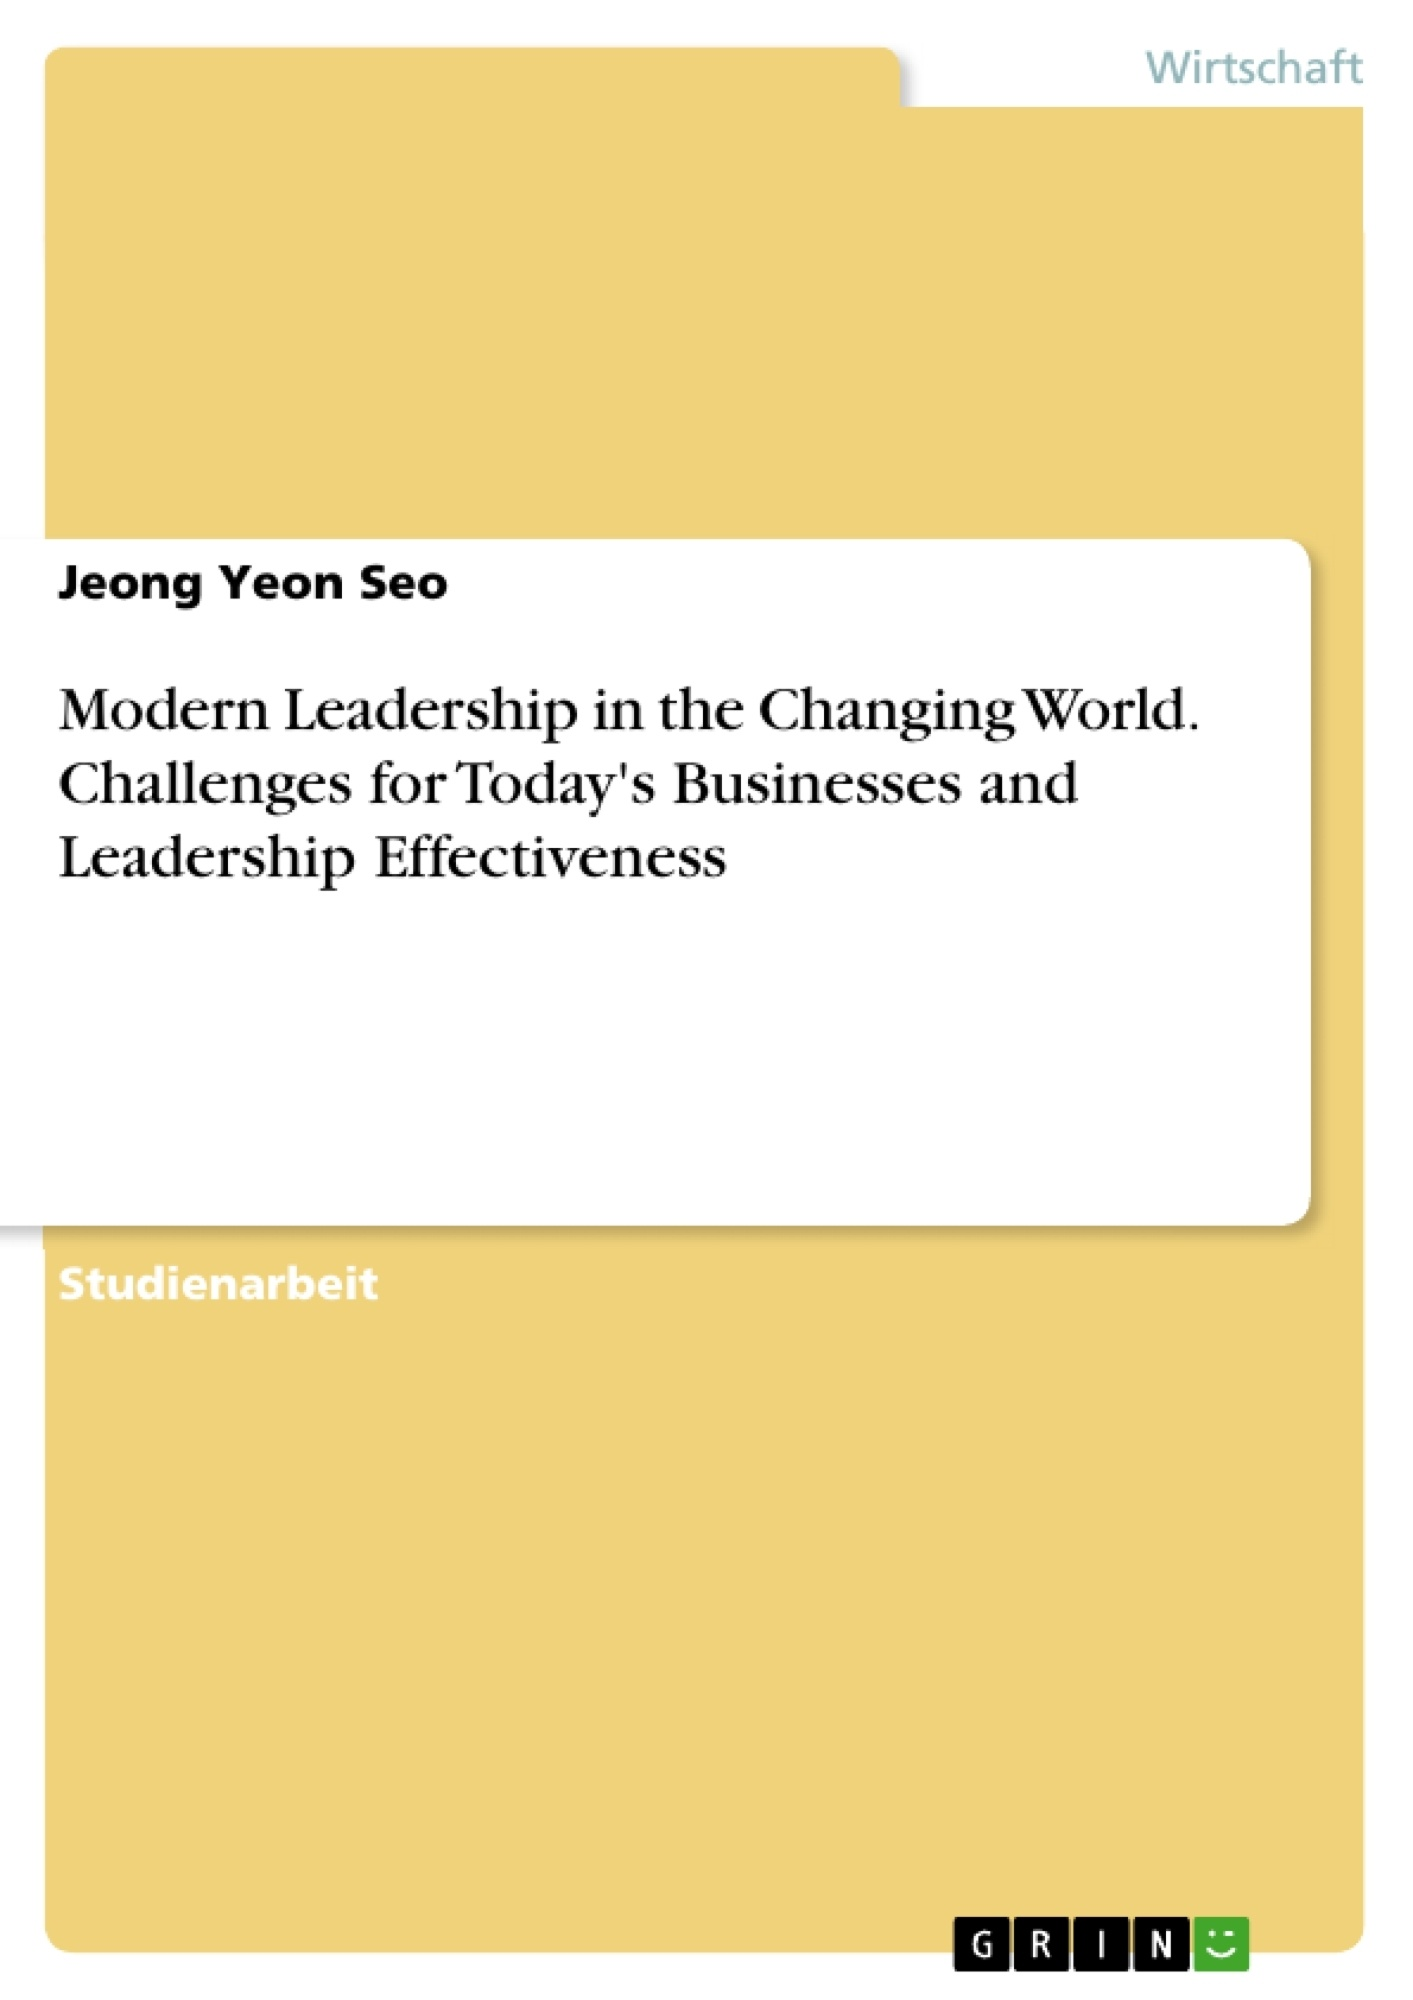 Titel: Modern Leadership in the Changing World. Challenges for Today's Businesses and Leadership Effectiveness